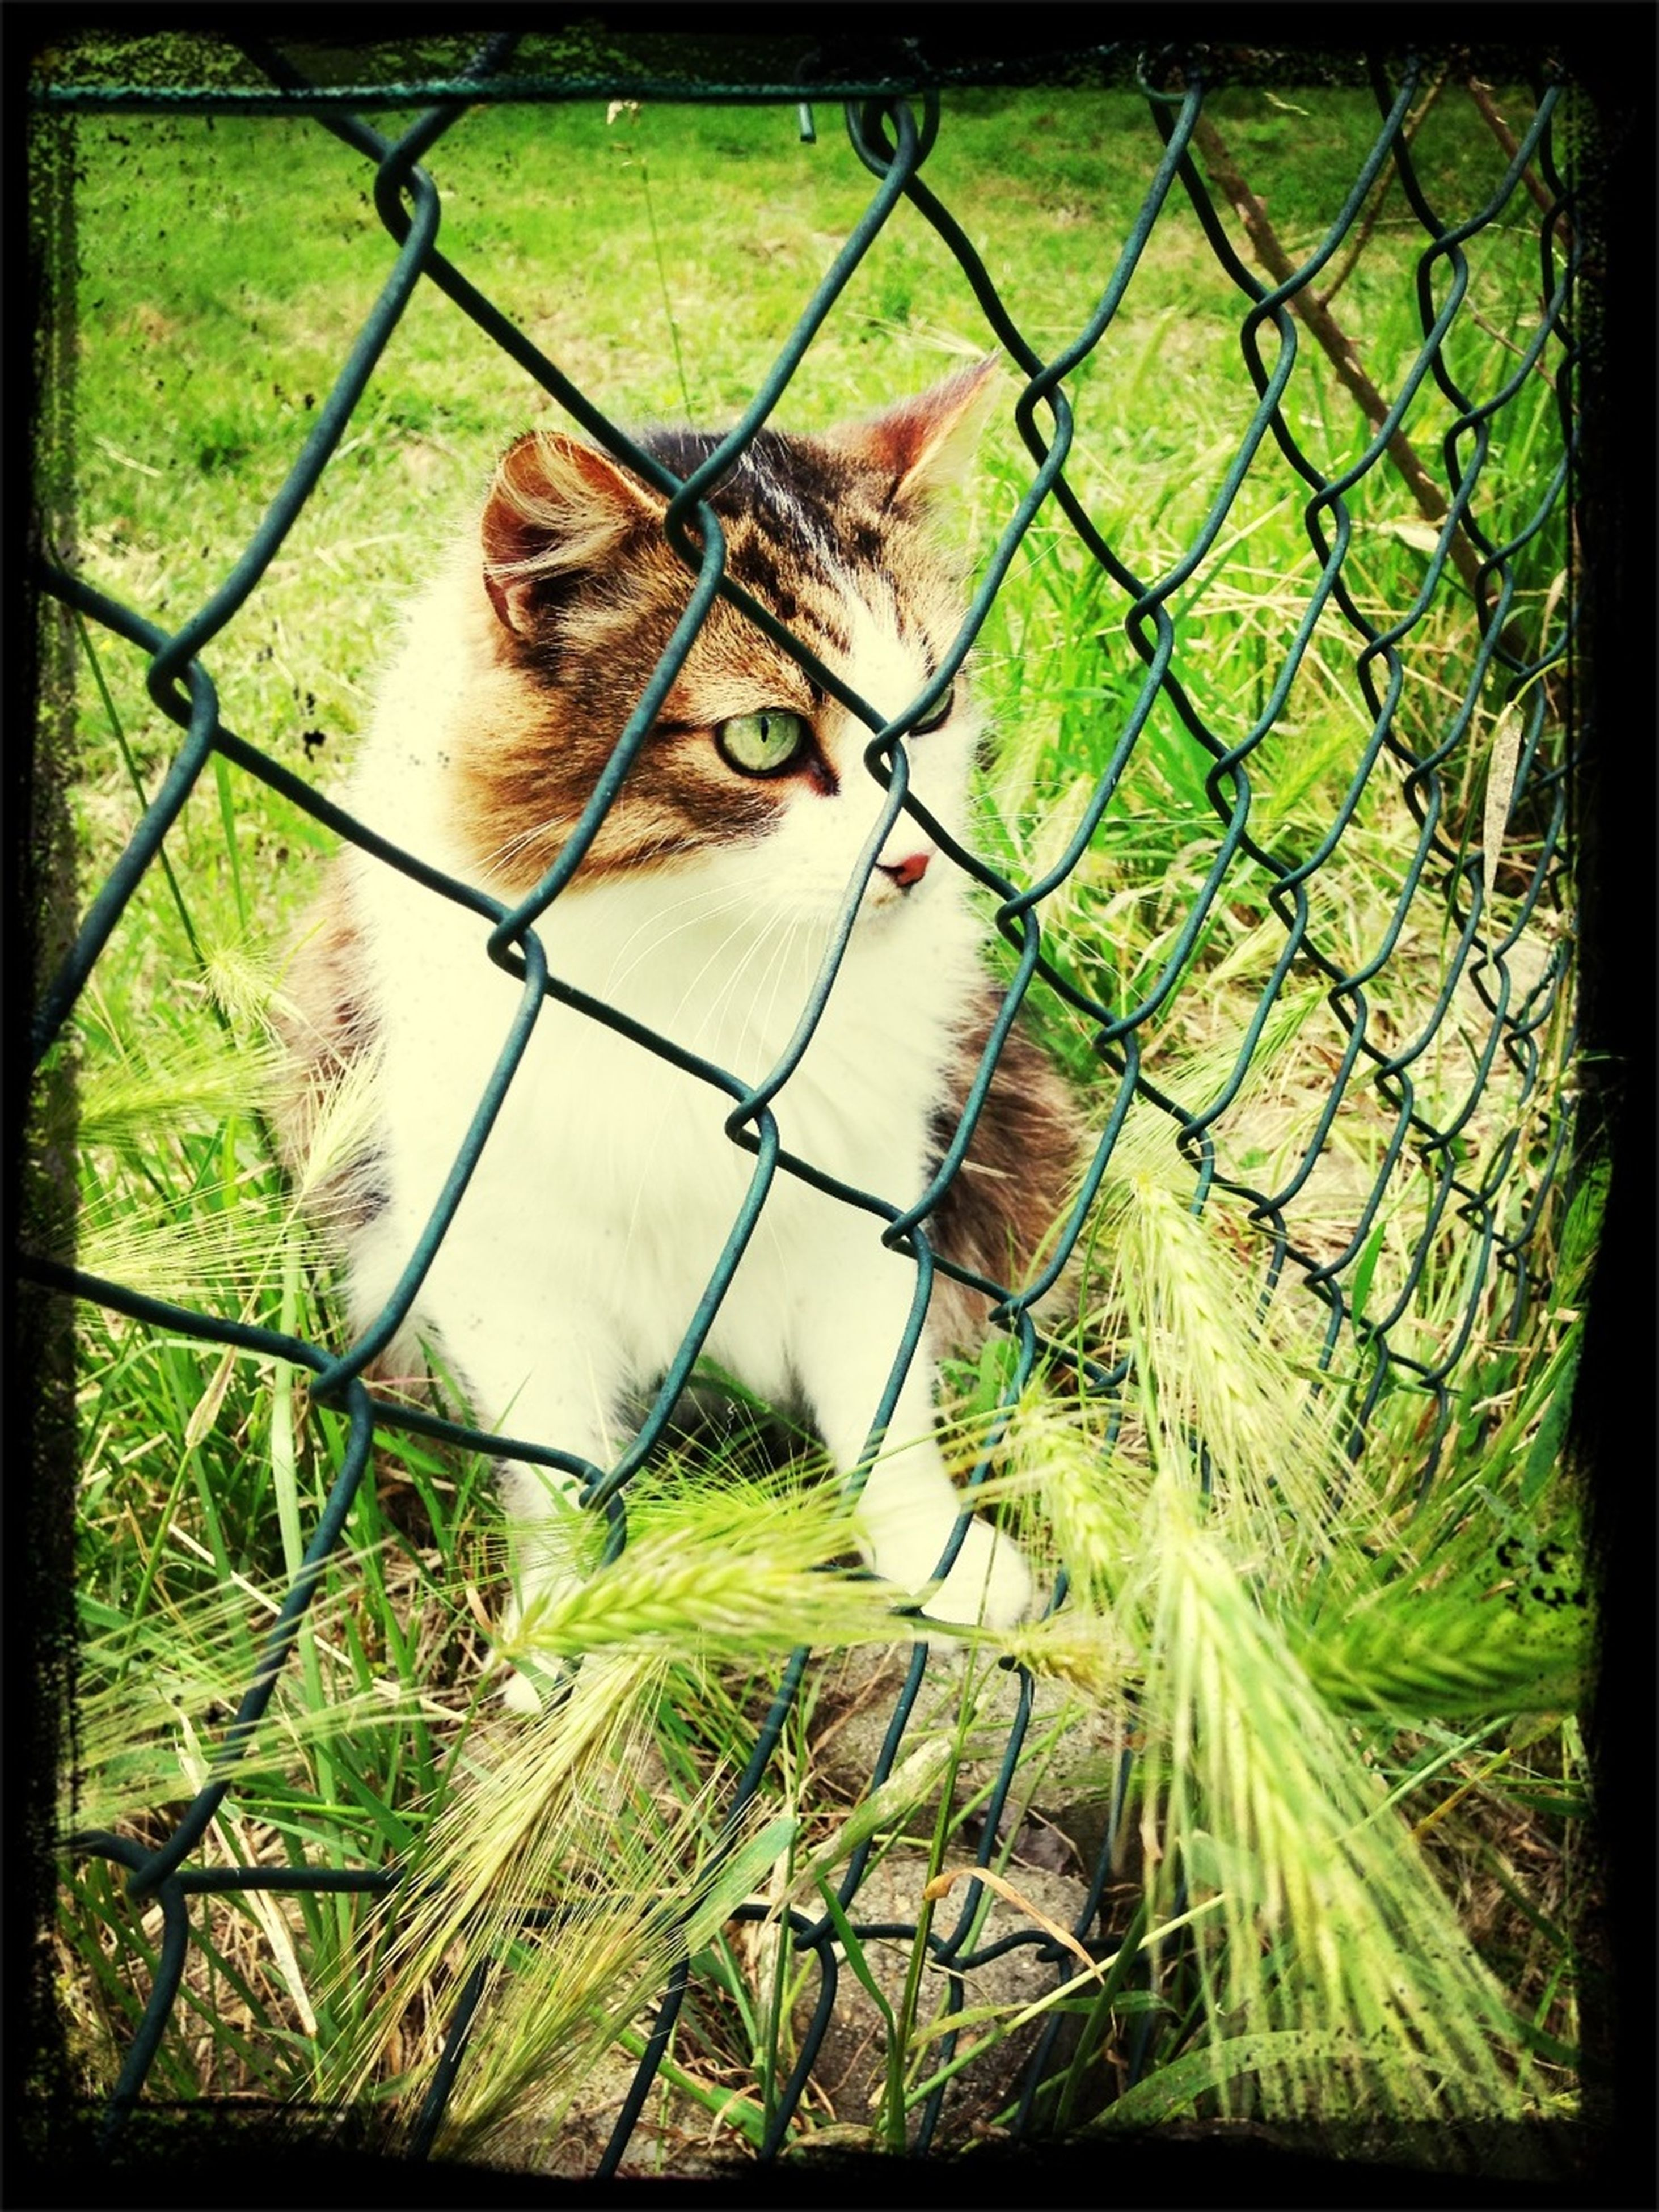 animal themes, domestic animals, mammal, one animal, pets, grass, fence, chainlink fence, field, transfer print, auto post production filter, dog, domestic cat, grassy, cat, plant, day, no people, nature, outdoors